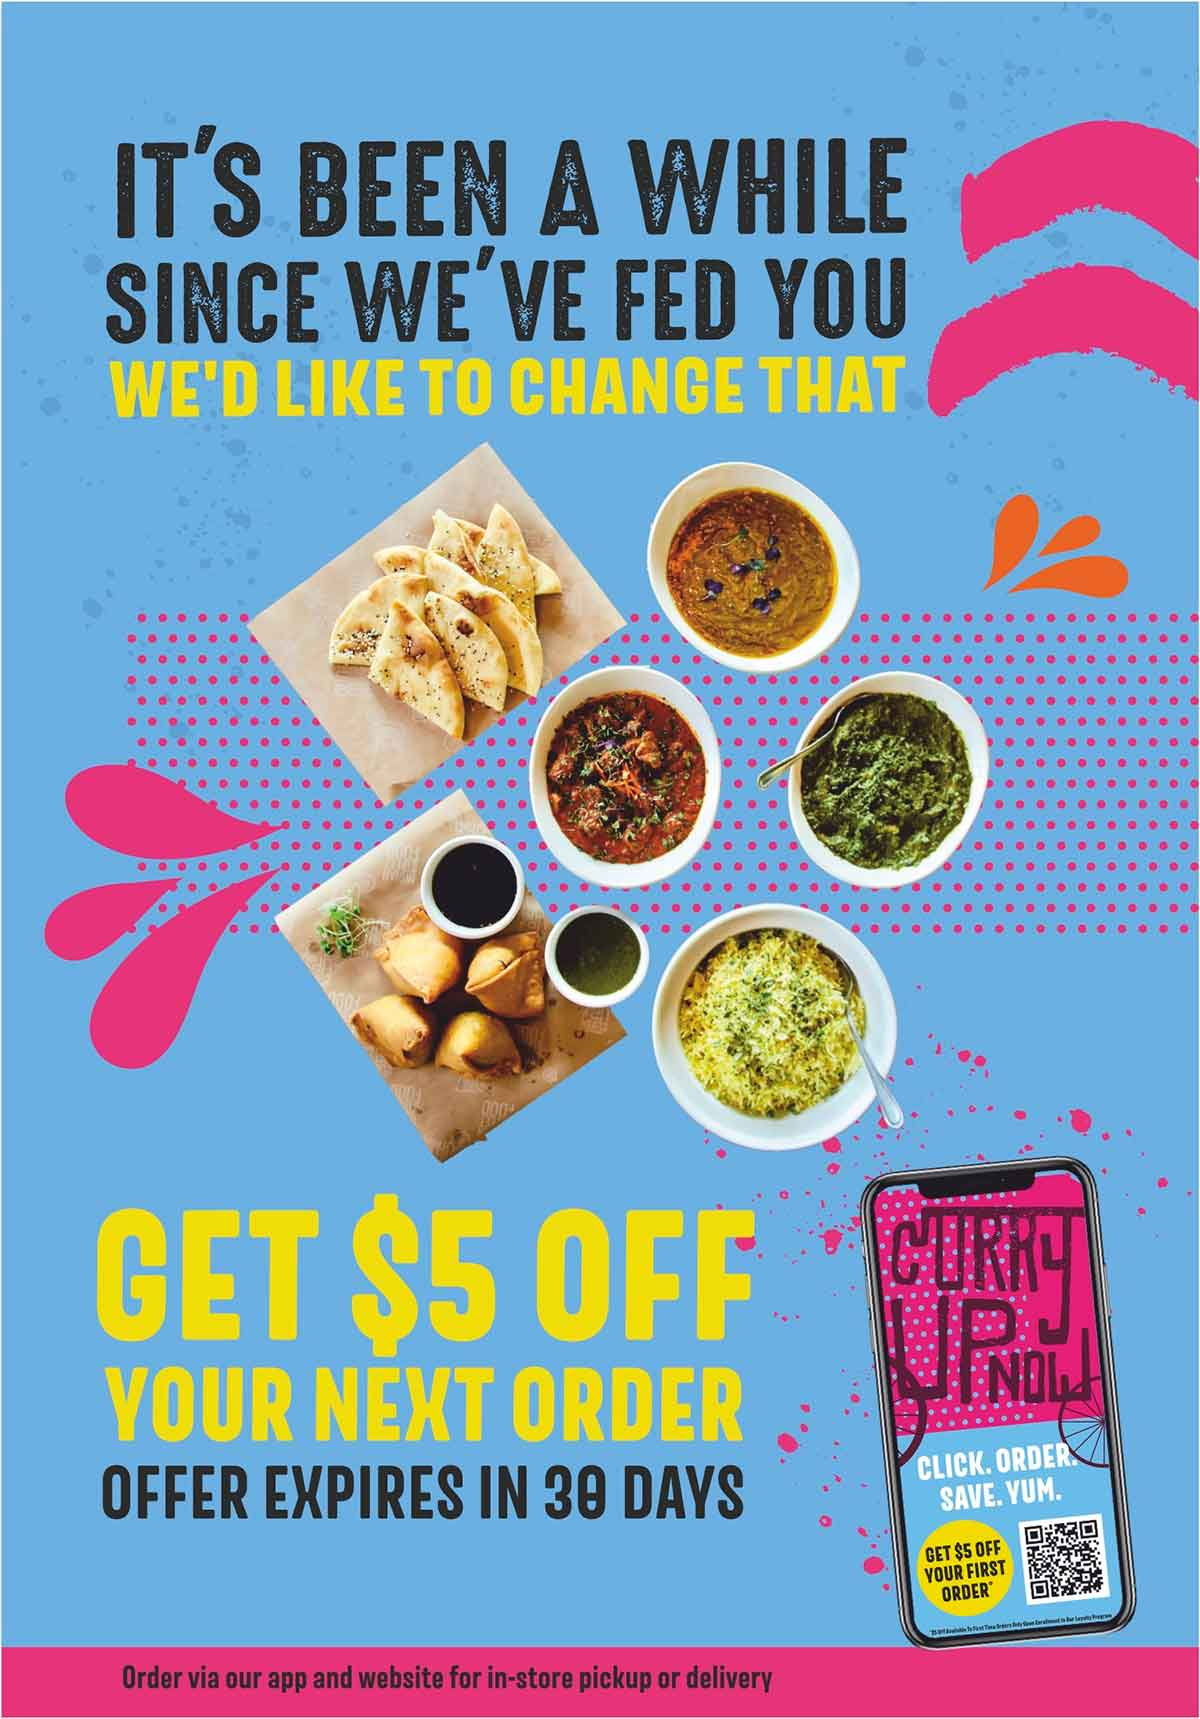 Curry Up Now email promoting $5 incentive for return guests